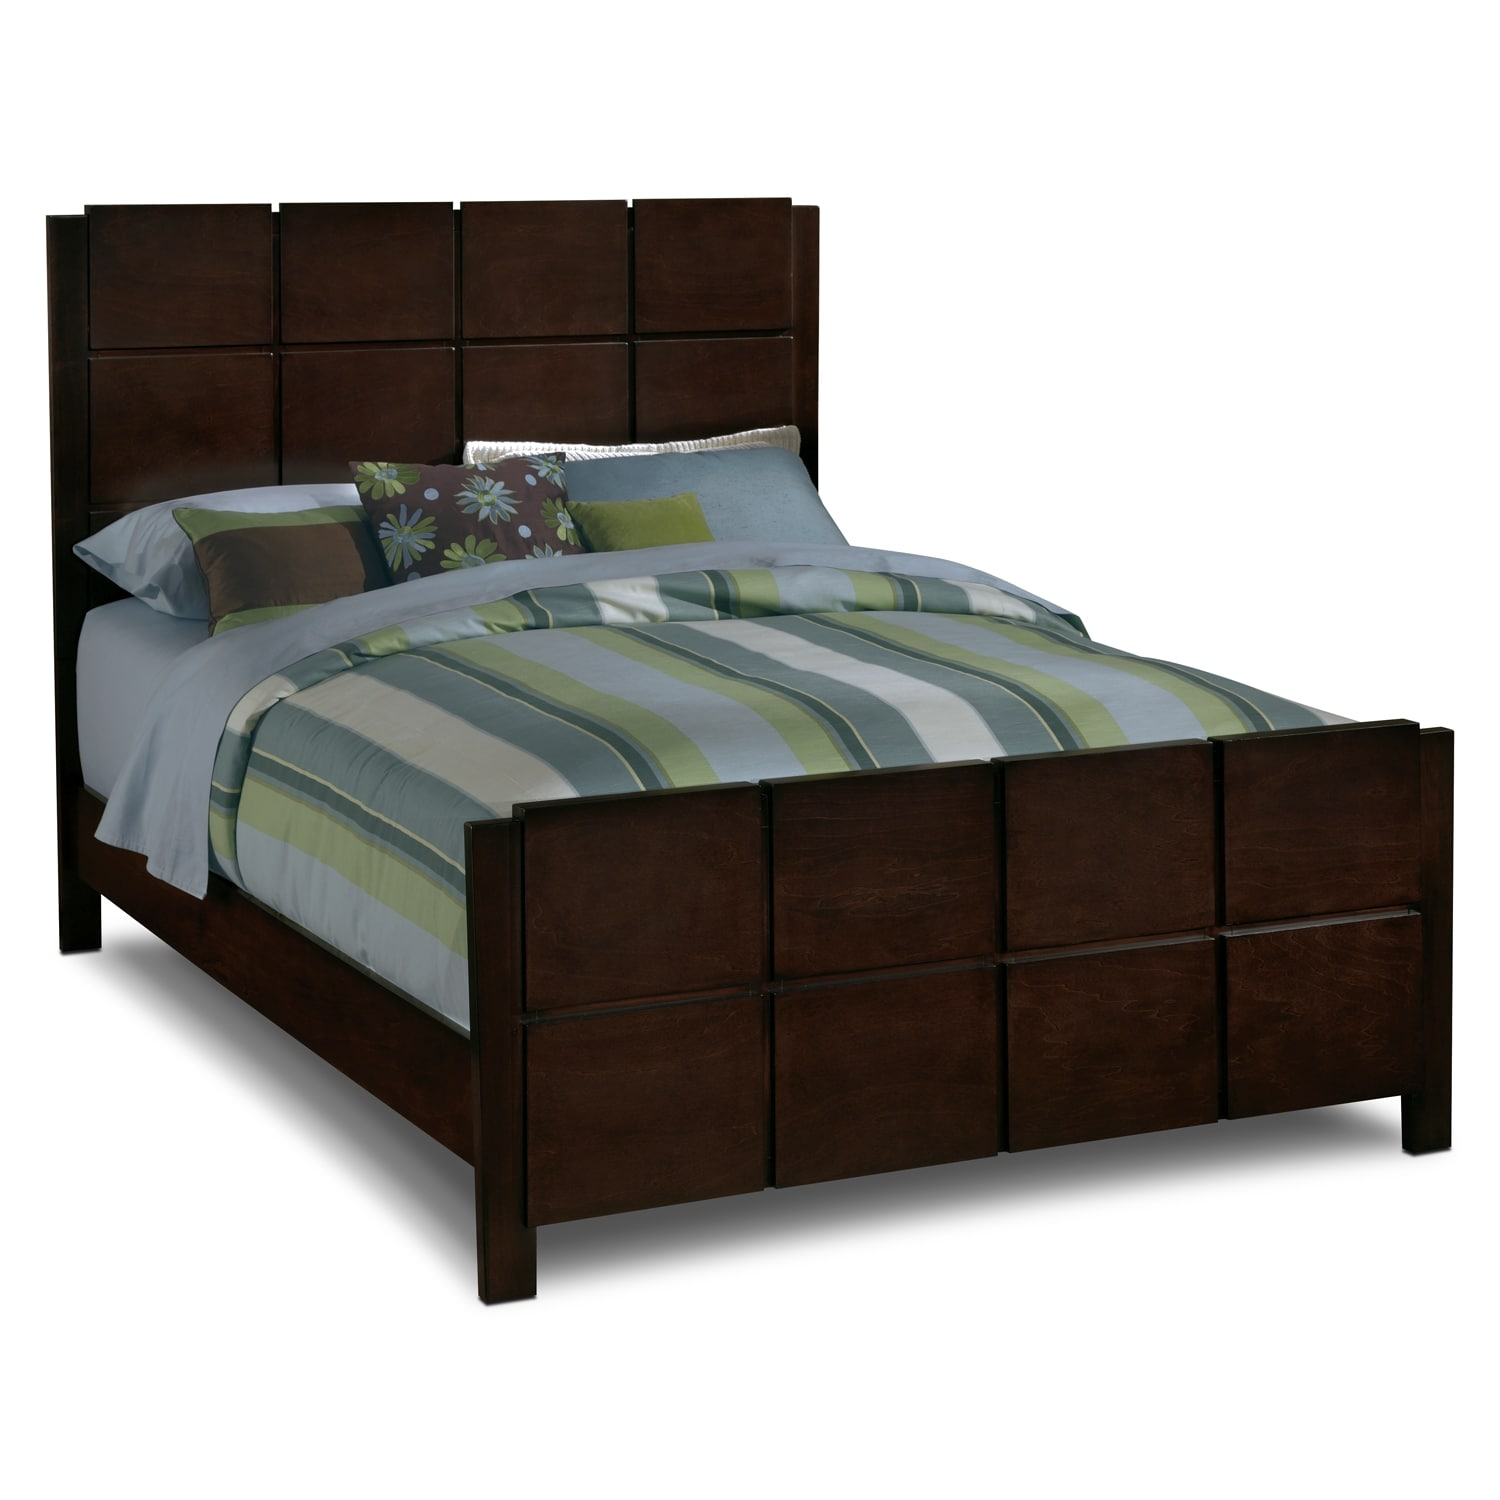 Mosiac Dark Brown Bed | Value City Furniture and Mattresses